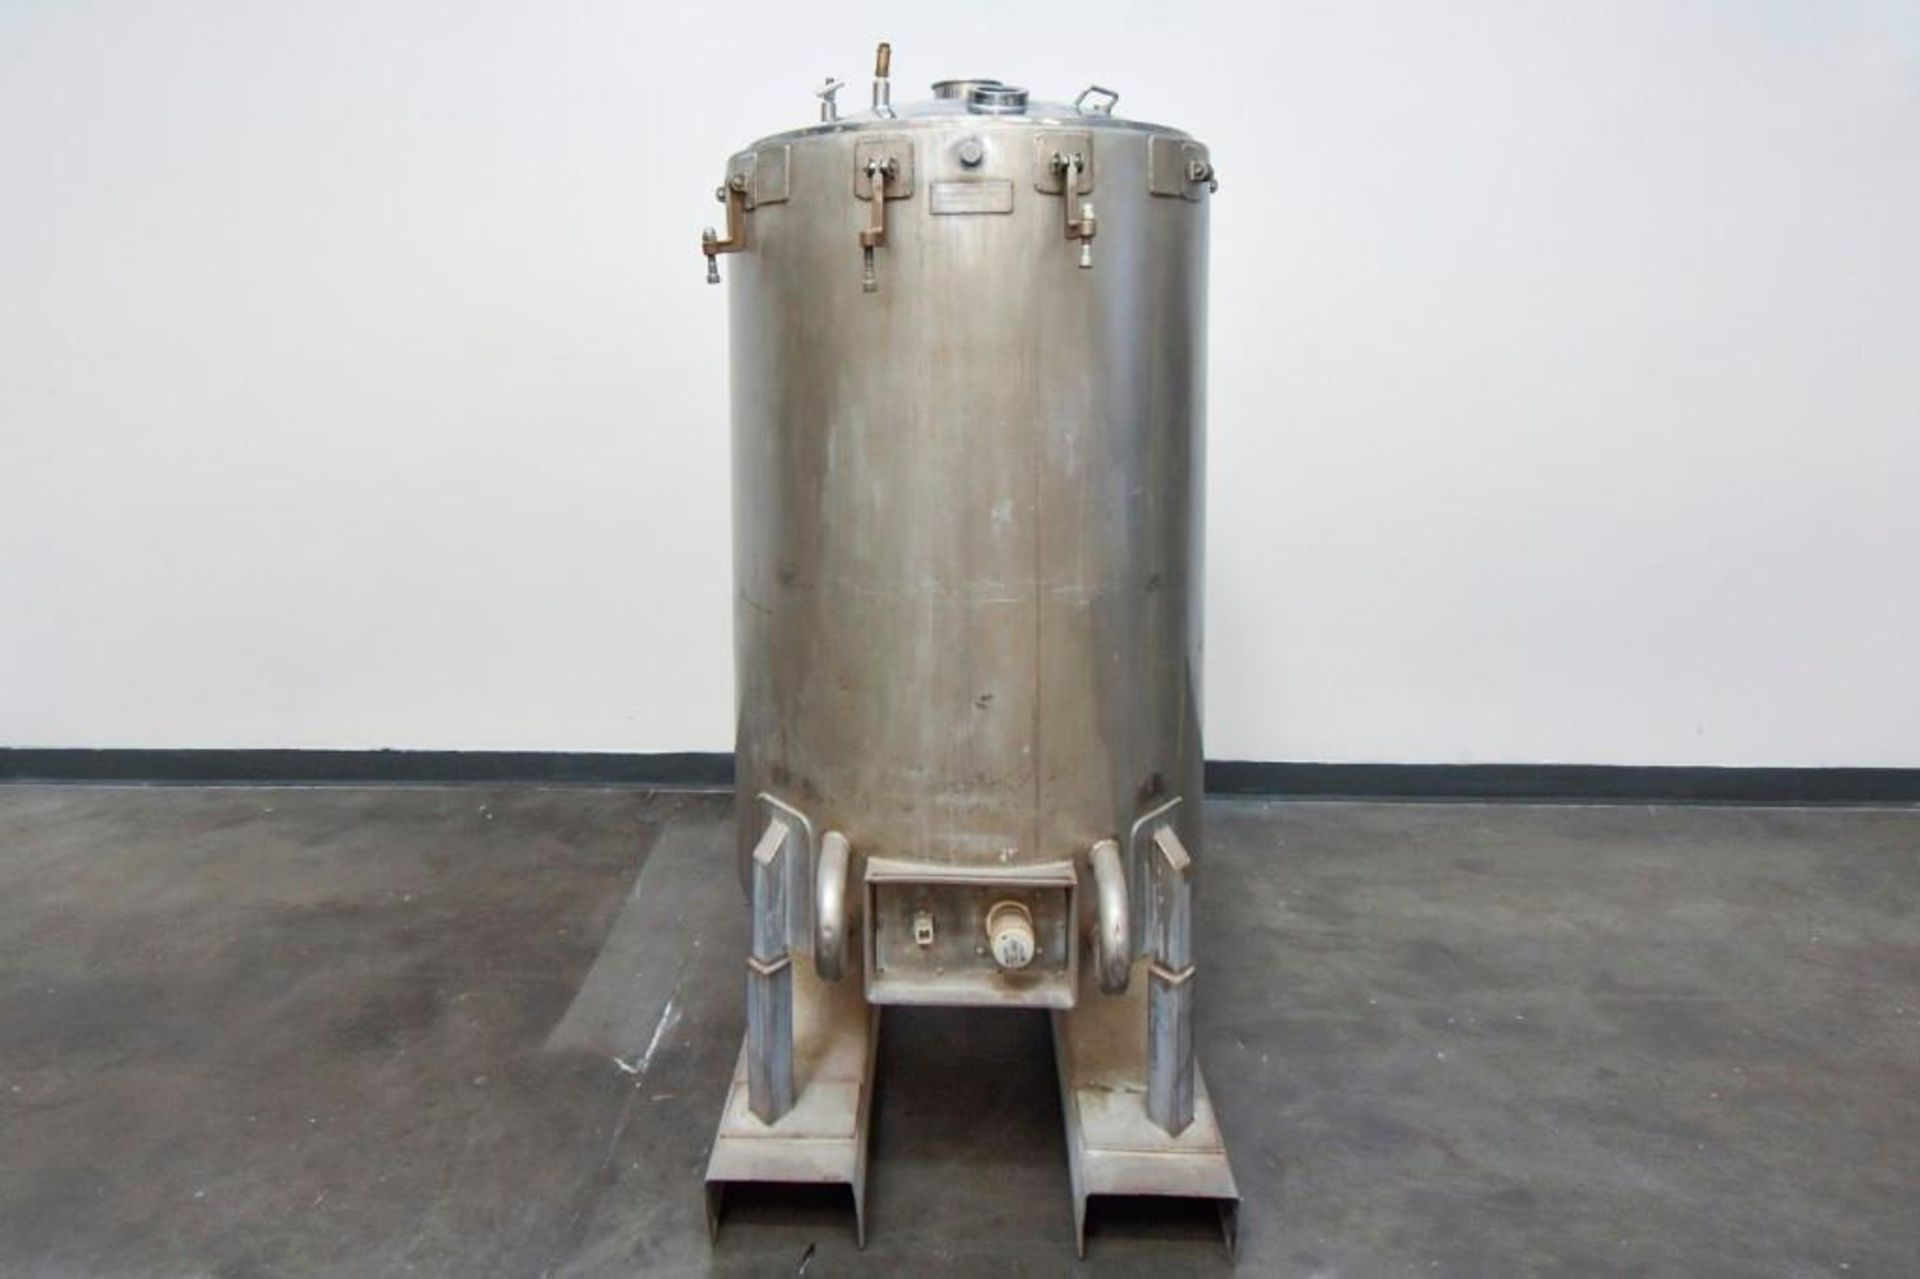 Jacketed Stainless Steel Holding Tank 340L - Image 6 of 18